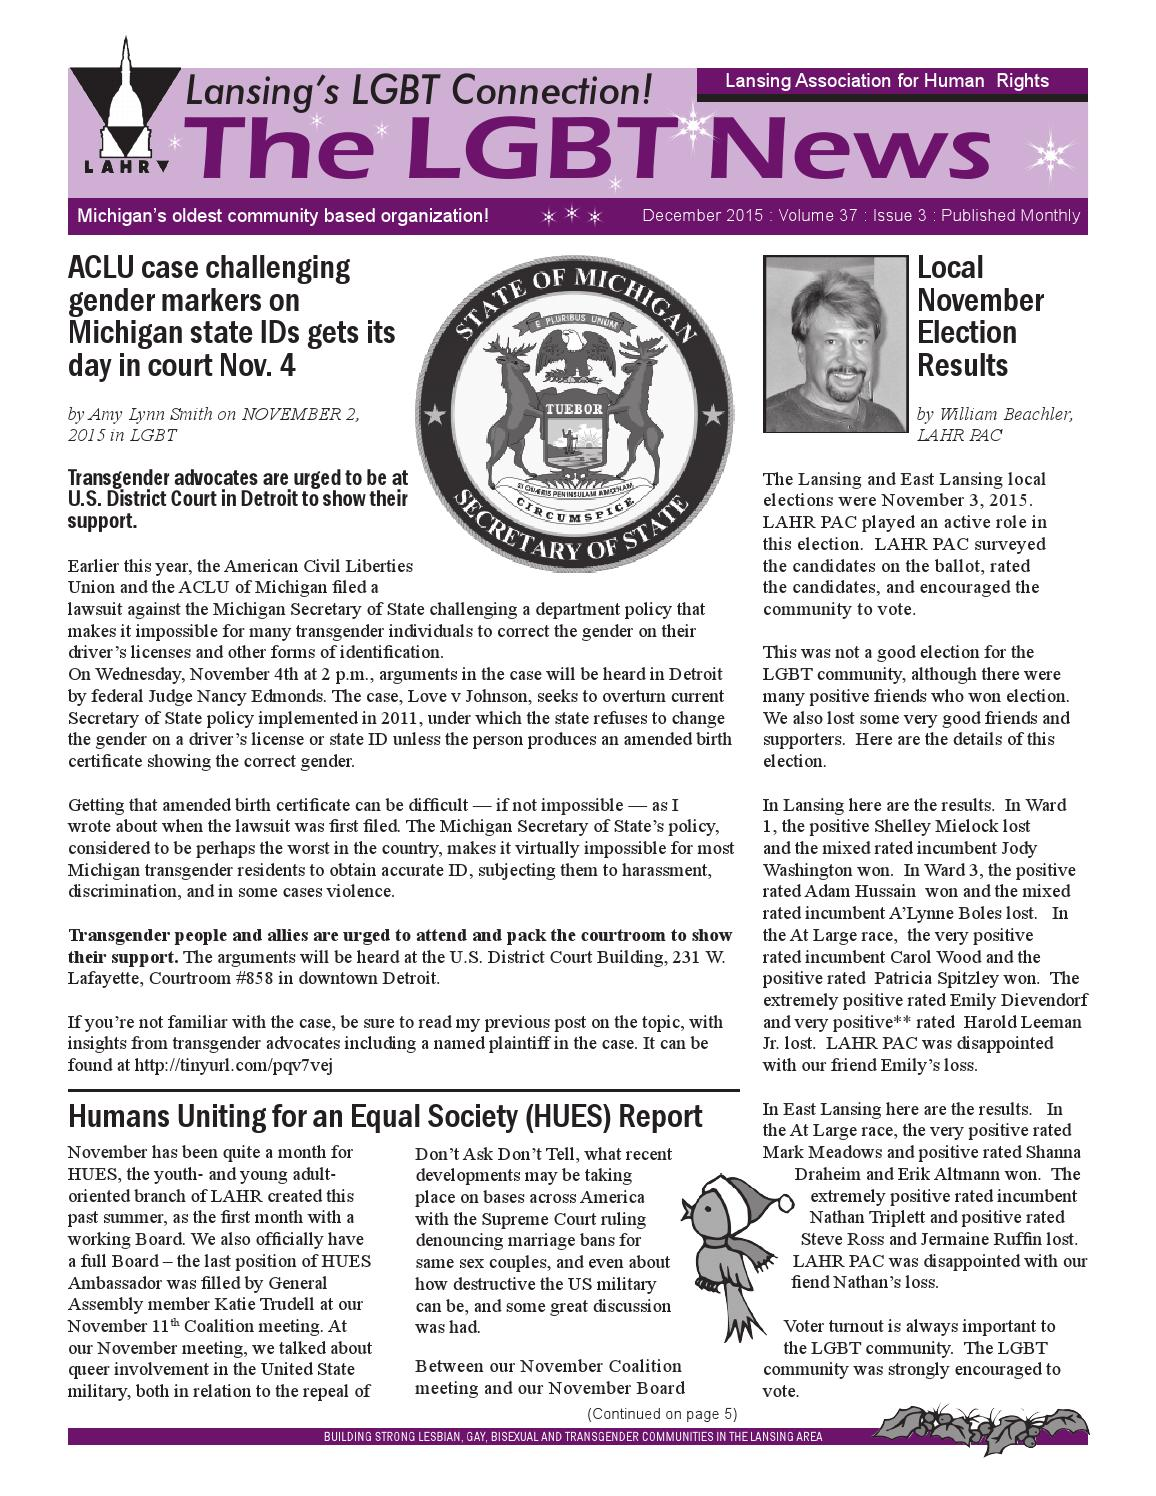 Lgbt News Lansing Connection Dec 15 By Frank Vaca Issuu